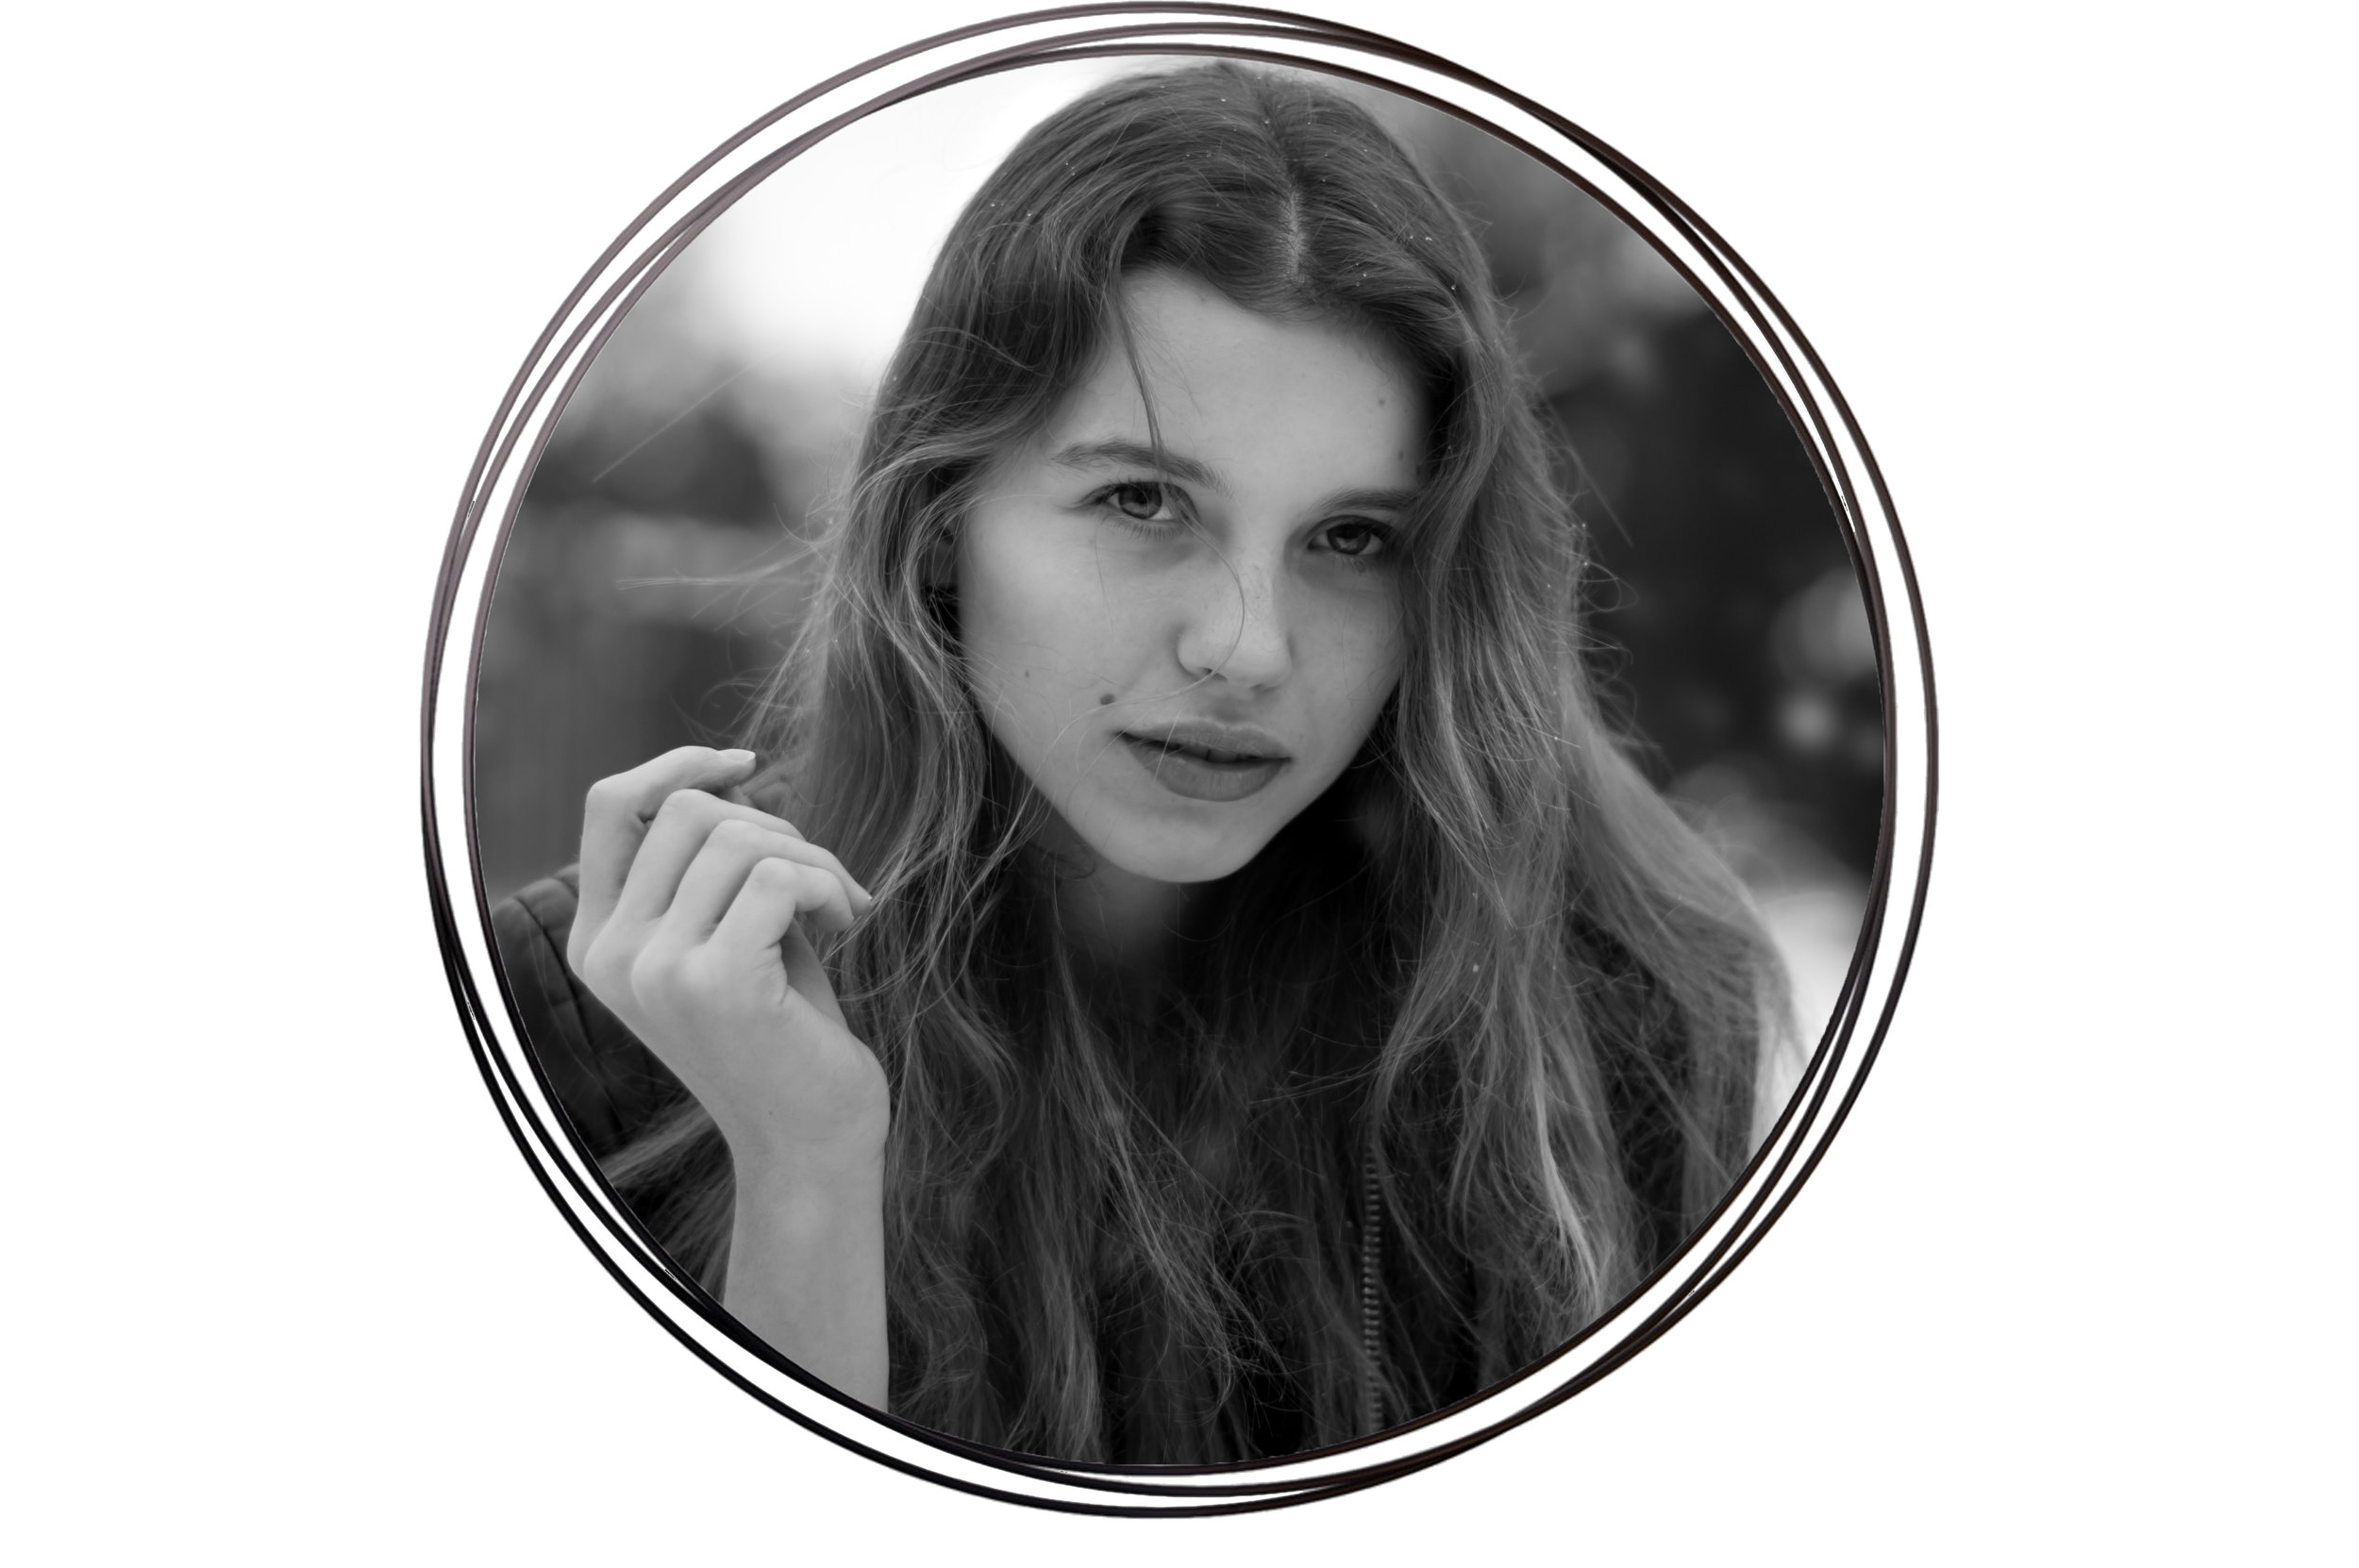 Rachael H - And my name is Rachael and I'm an aspiring author studying publishing at uni. Most of my time is spent reading or running but I have a long harbored passion for modelling, so it helps that I'm friends with a photographer